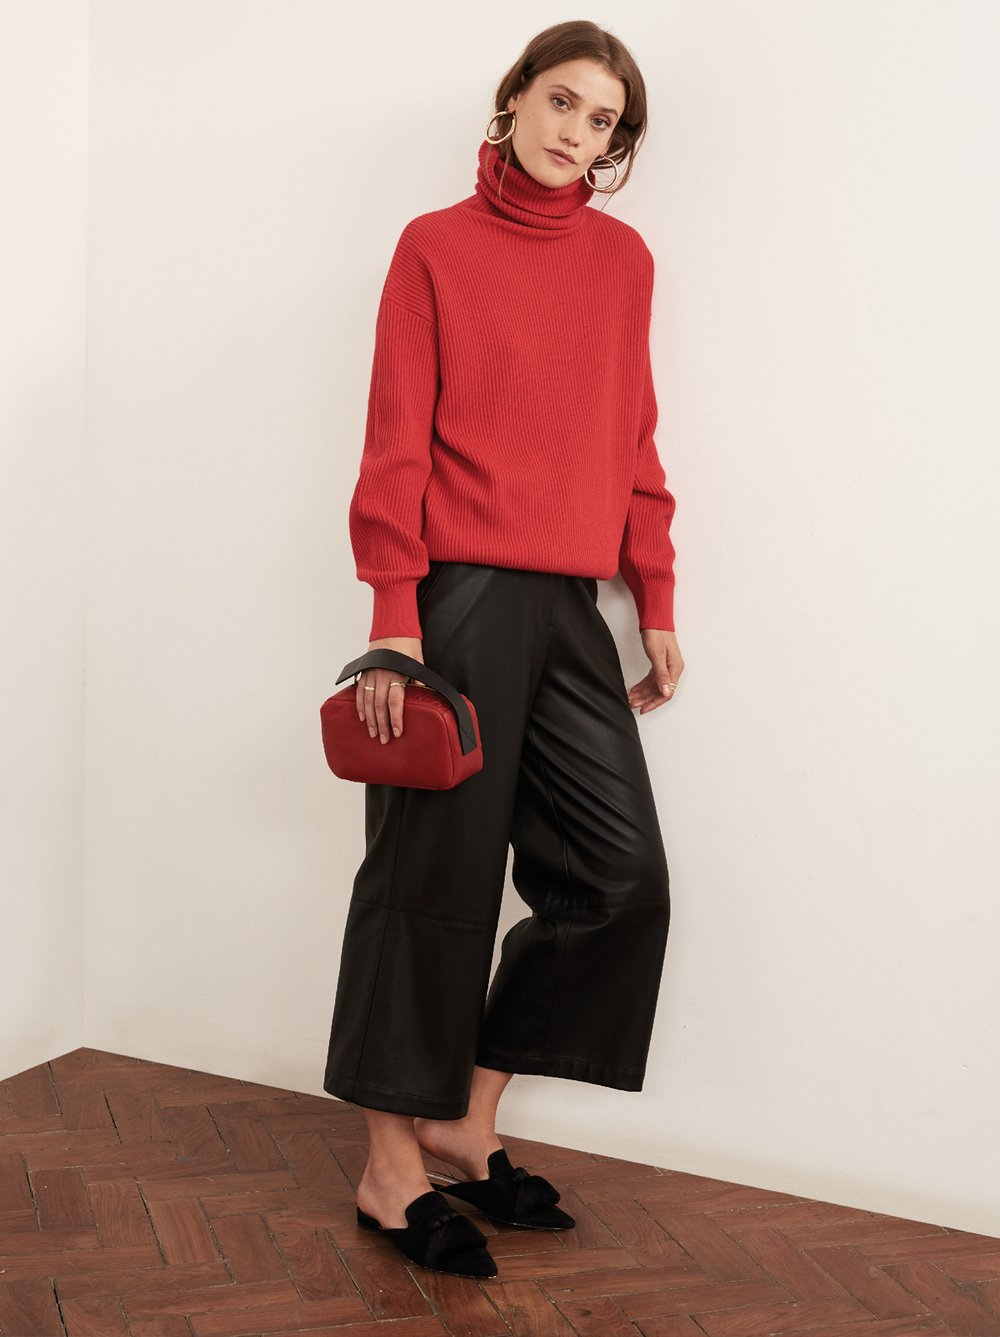 Mabel_Red_Rollneck_Sweater_Front_1000x.jpg